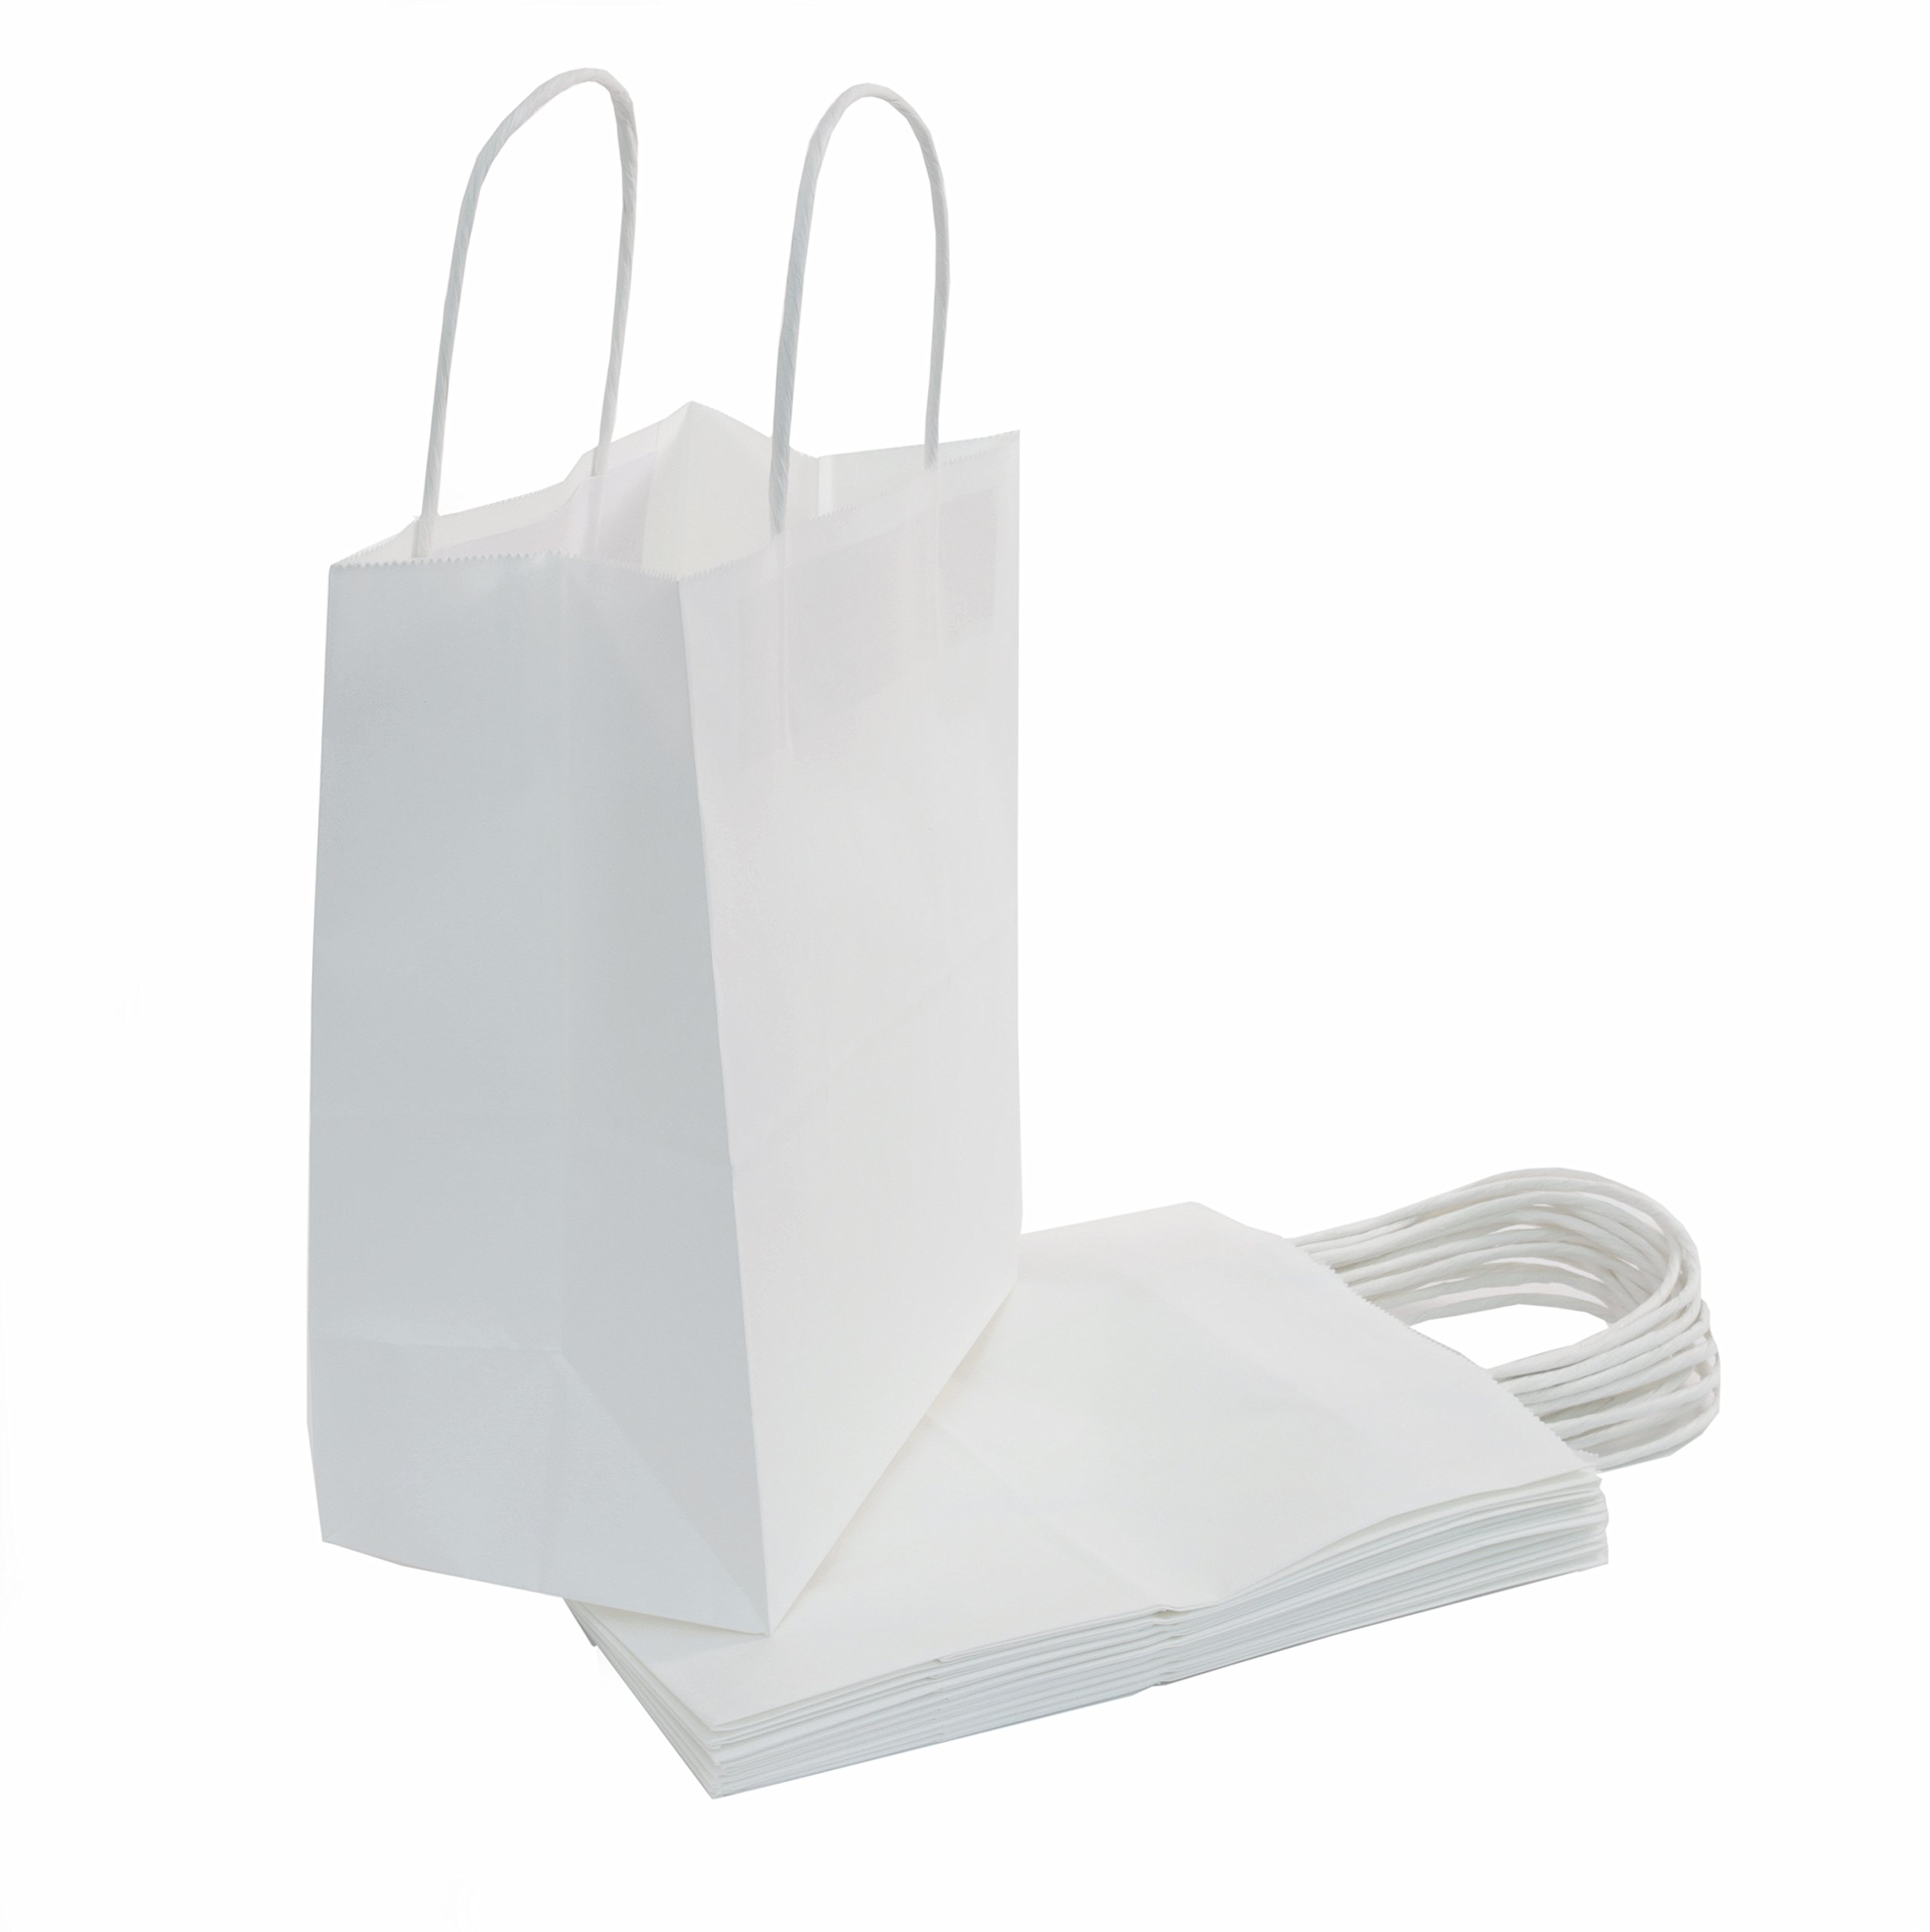 100 | 50 | 25 Count - Size (8''x4.75''x10'') Bulk White Paper Bags with Handles - Perfect Solution for Baby Shower, Birthday Parties, Gifts, Restaurant takeouts, Shopping, Retail by Parker Eight